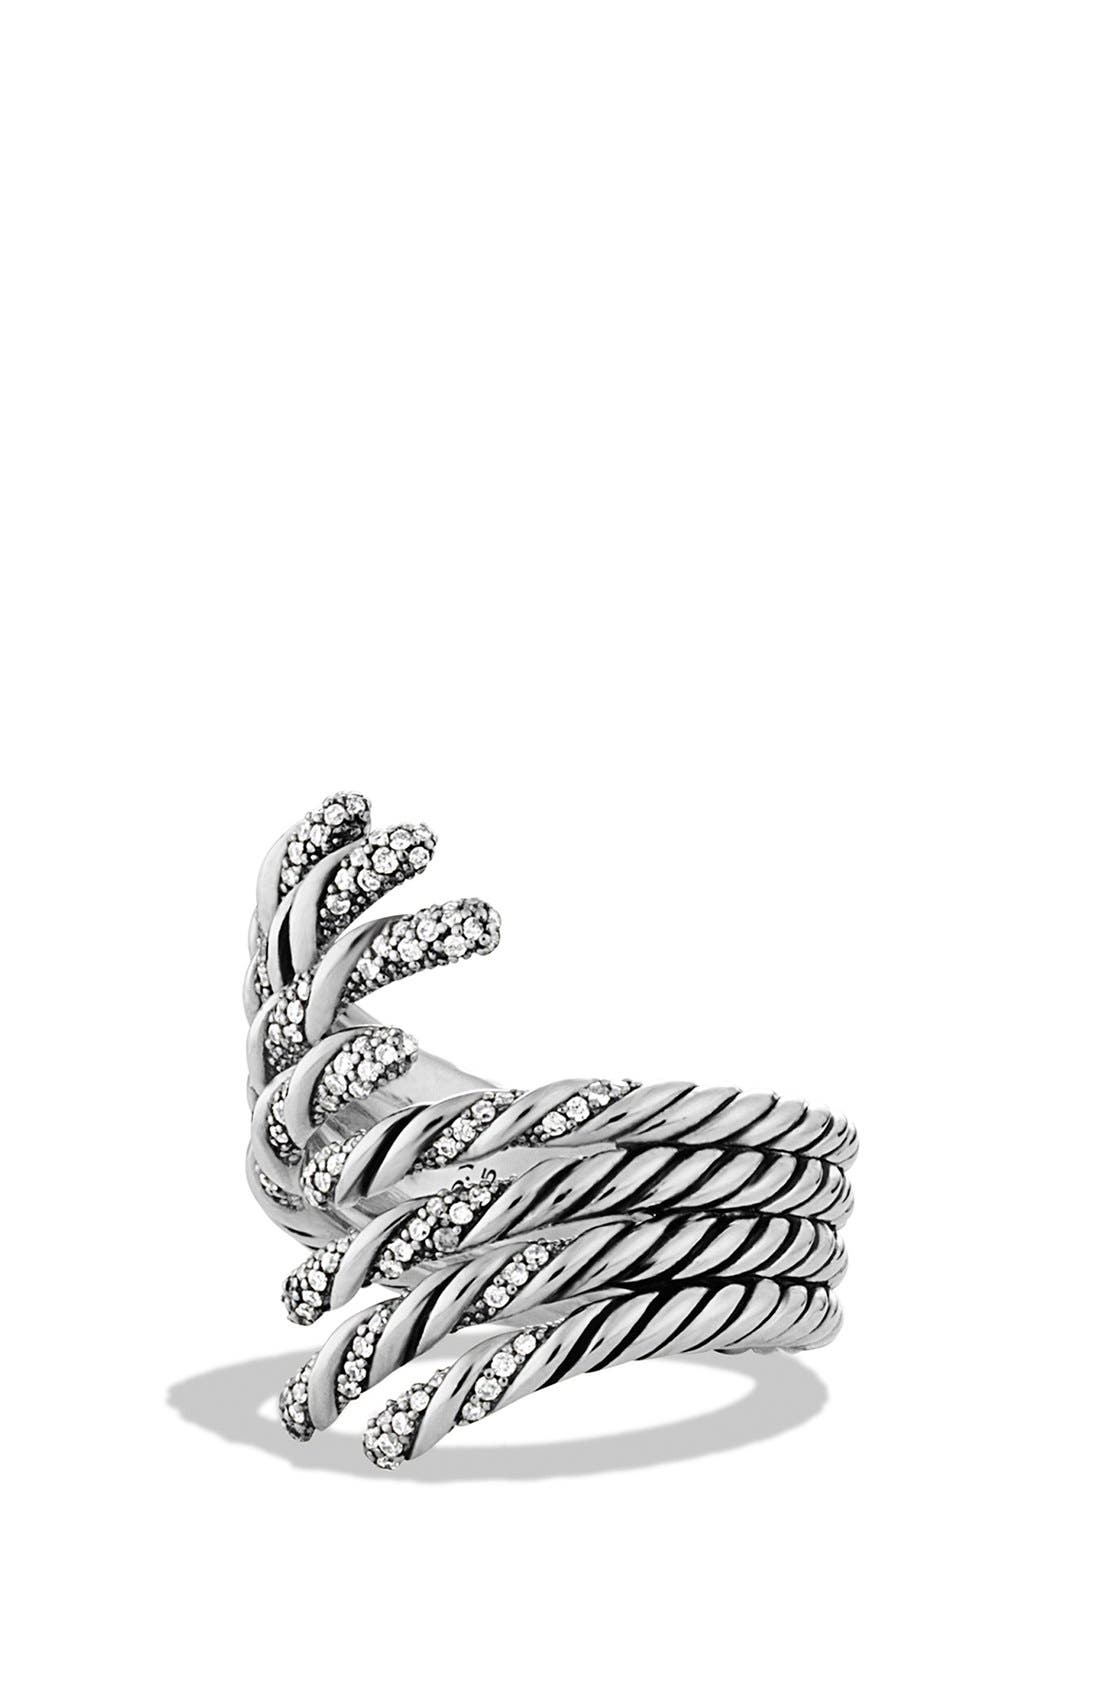 Alternate Image 1 Selected - David Yurman 'Willow' Open Four-Row Ring with Diamonds